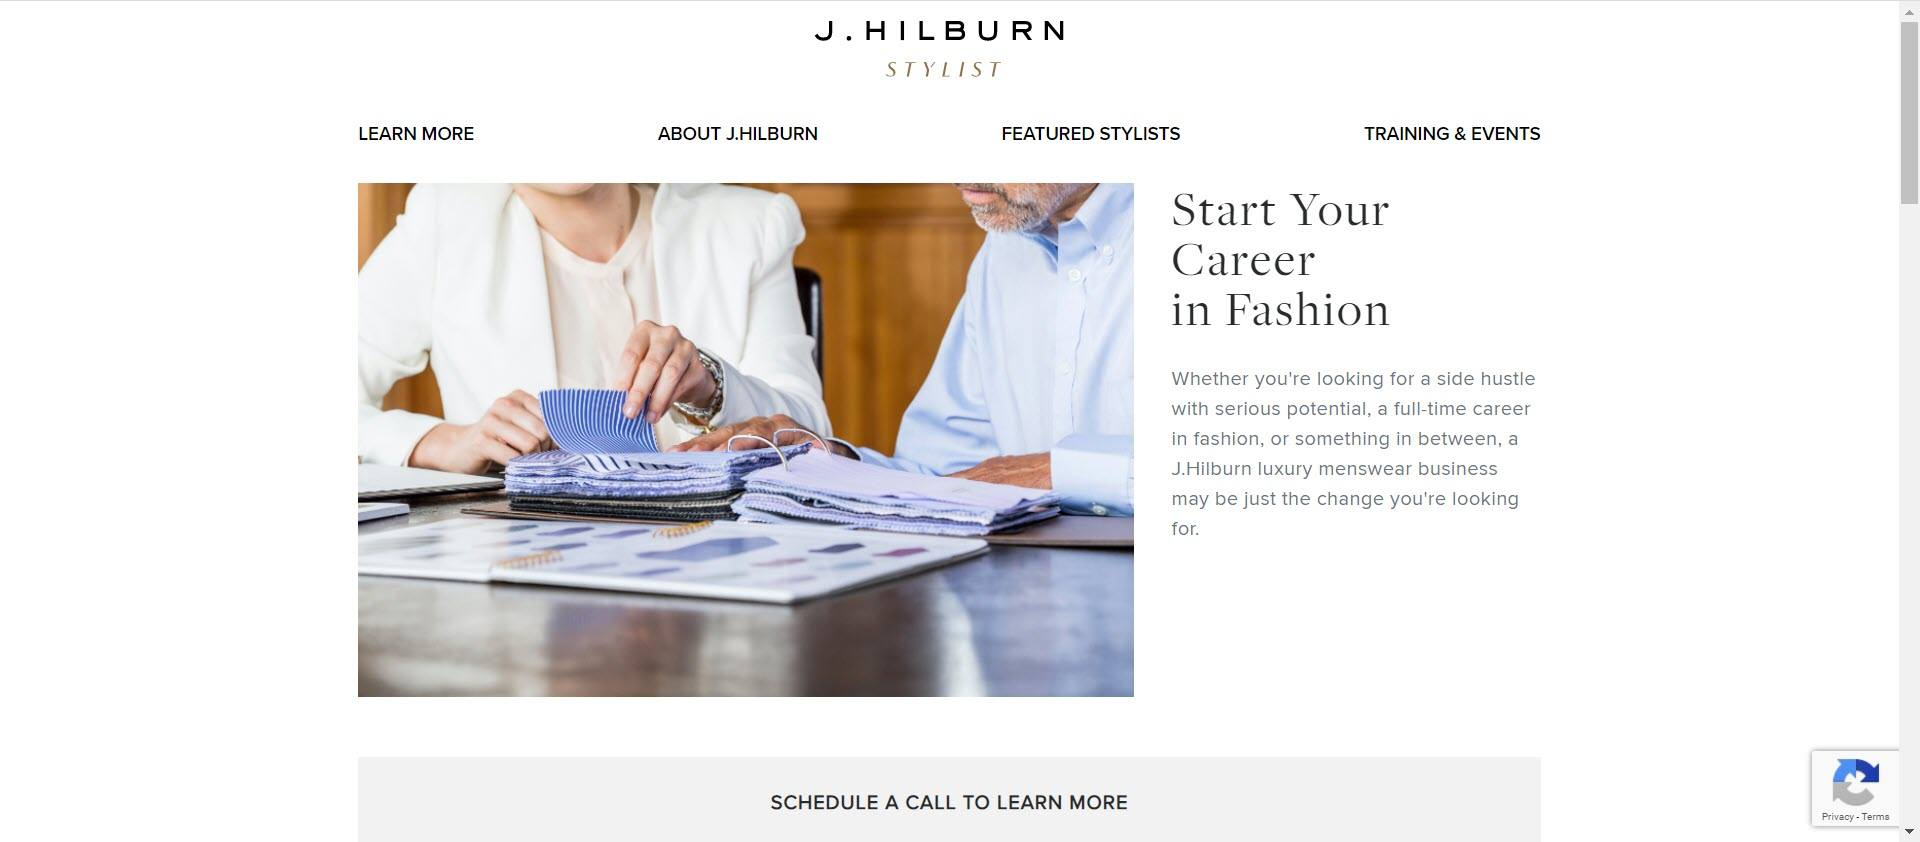 J. Hilburn MLM Review - Opportunity